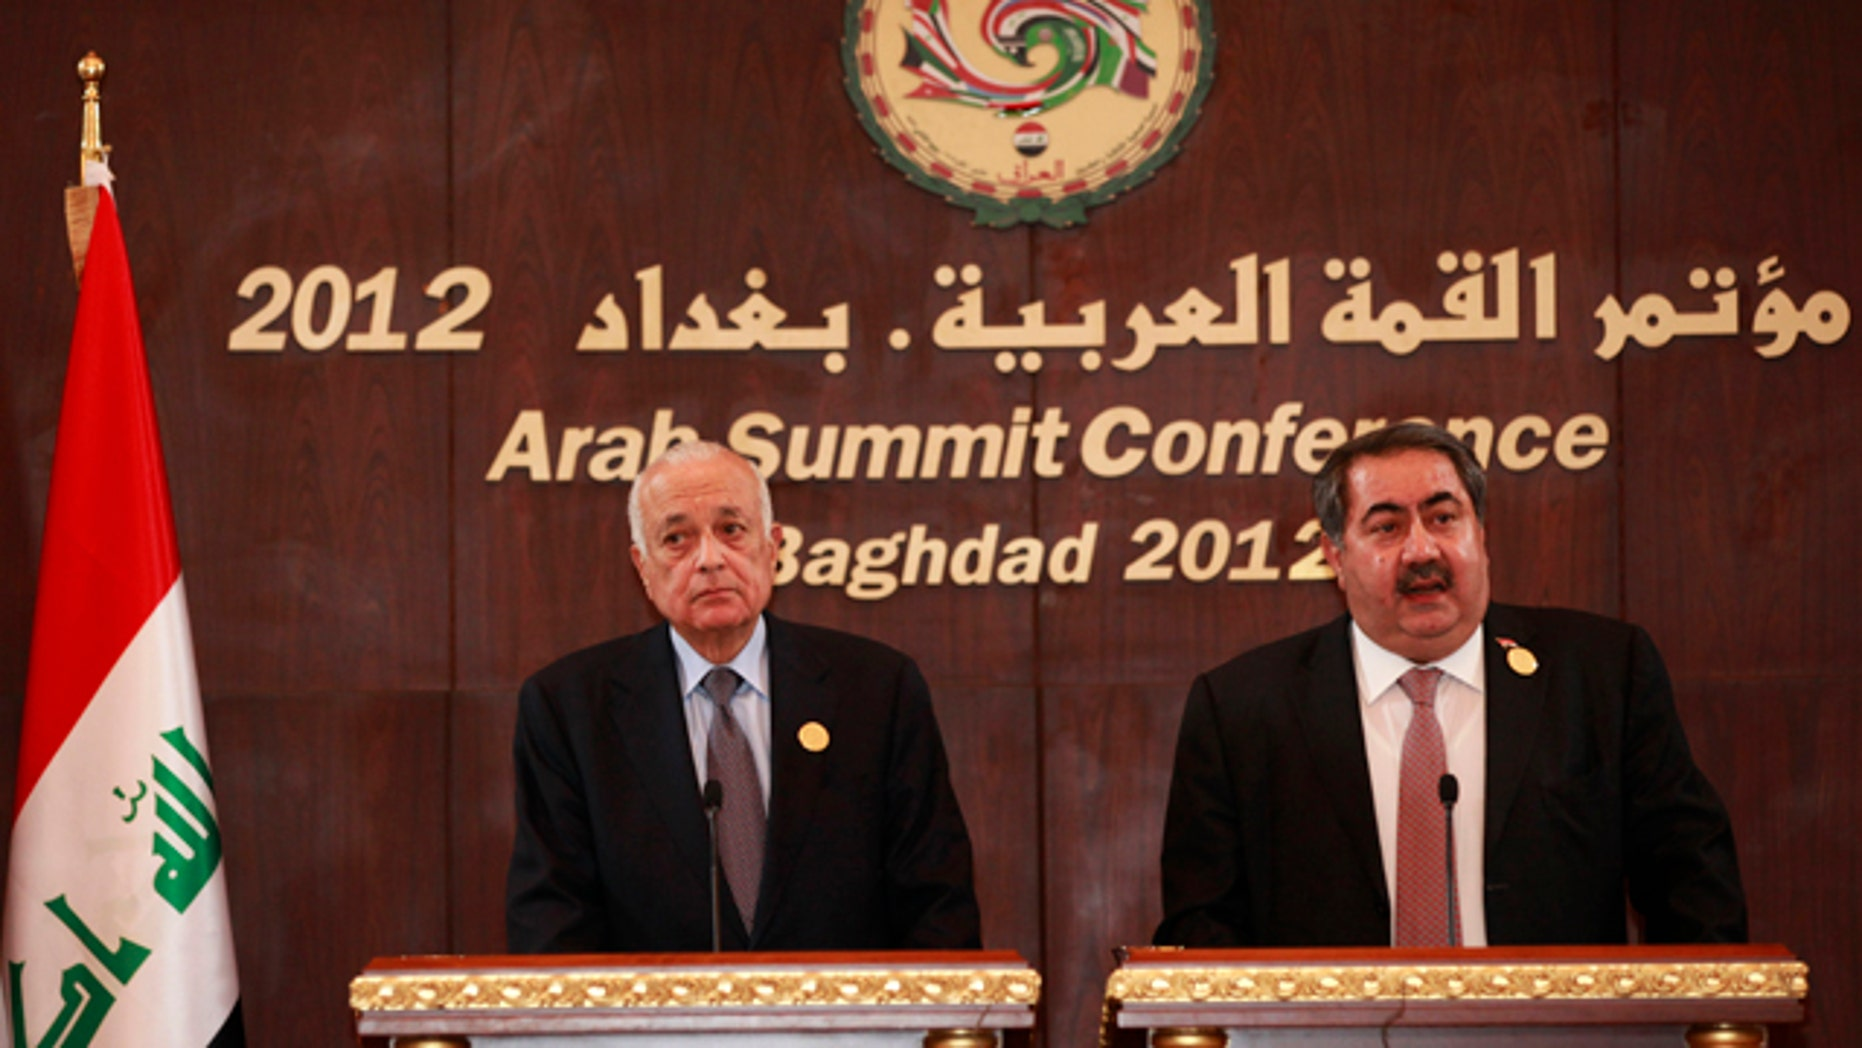 March 28, 2012: Arab League Secretary General Nabil Elaraby, left, and Iraqi Foreign Minister Hoshyar Zebari, right, hold a joint press conference in Baghdad, Iraq.